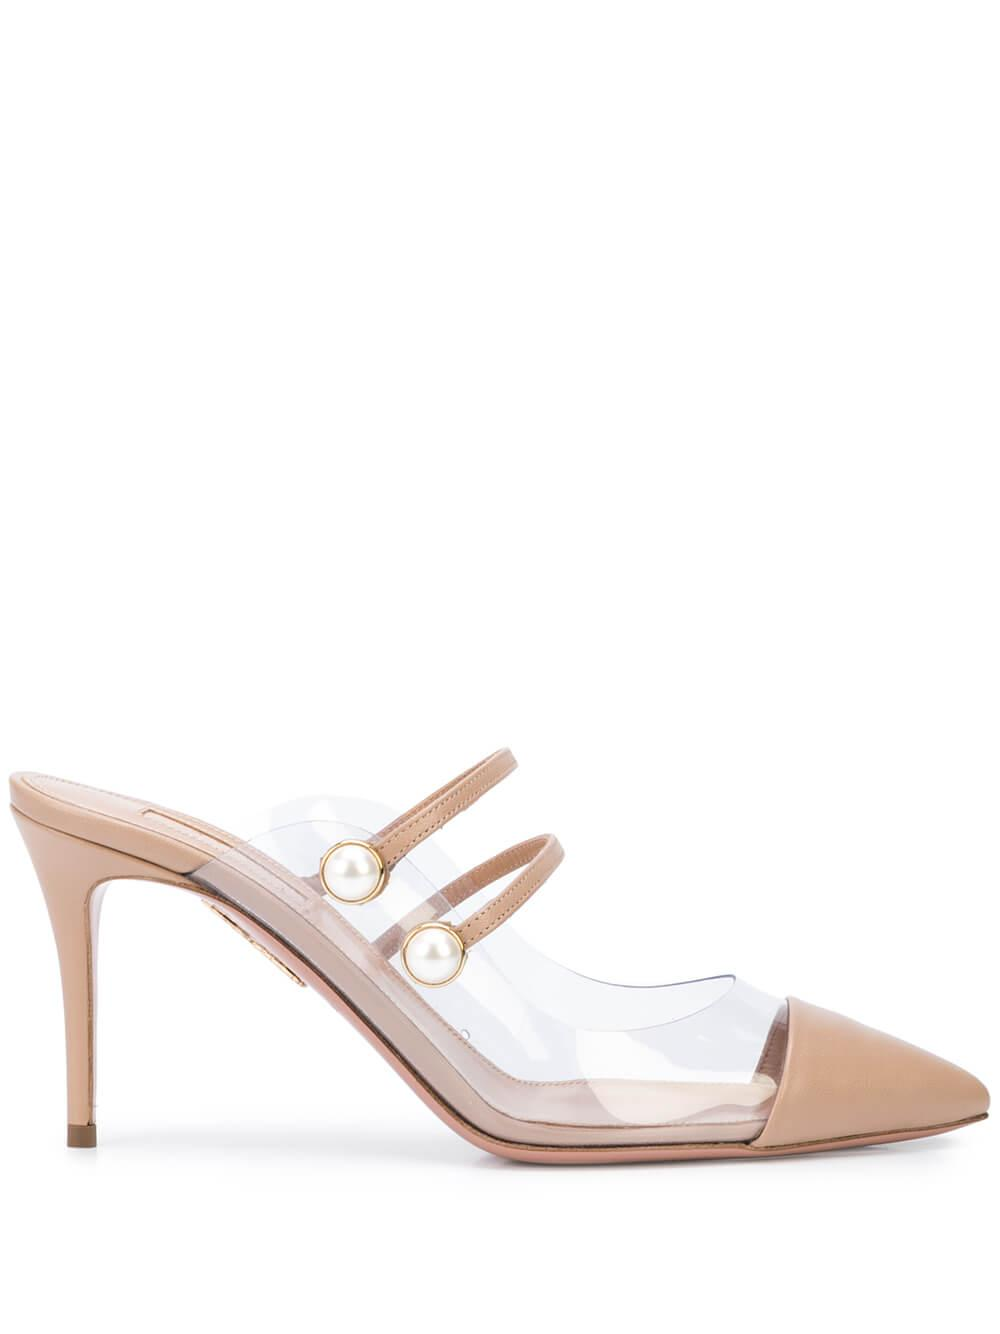 Oz Leather And Pvc 85mm Mule Item # OZFMIDS0-NPV